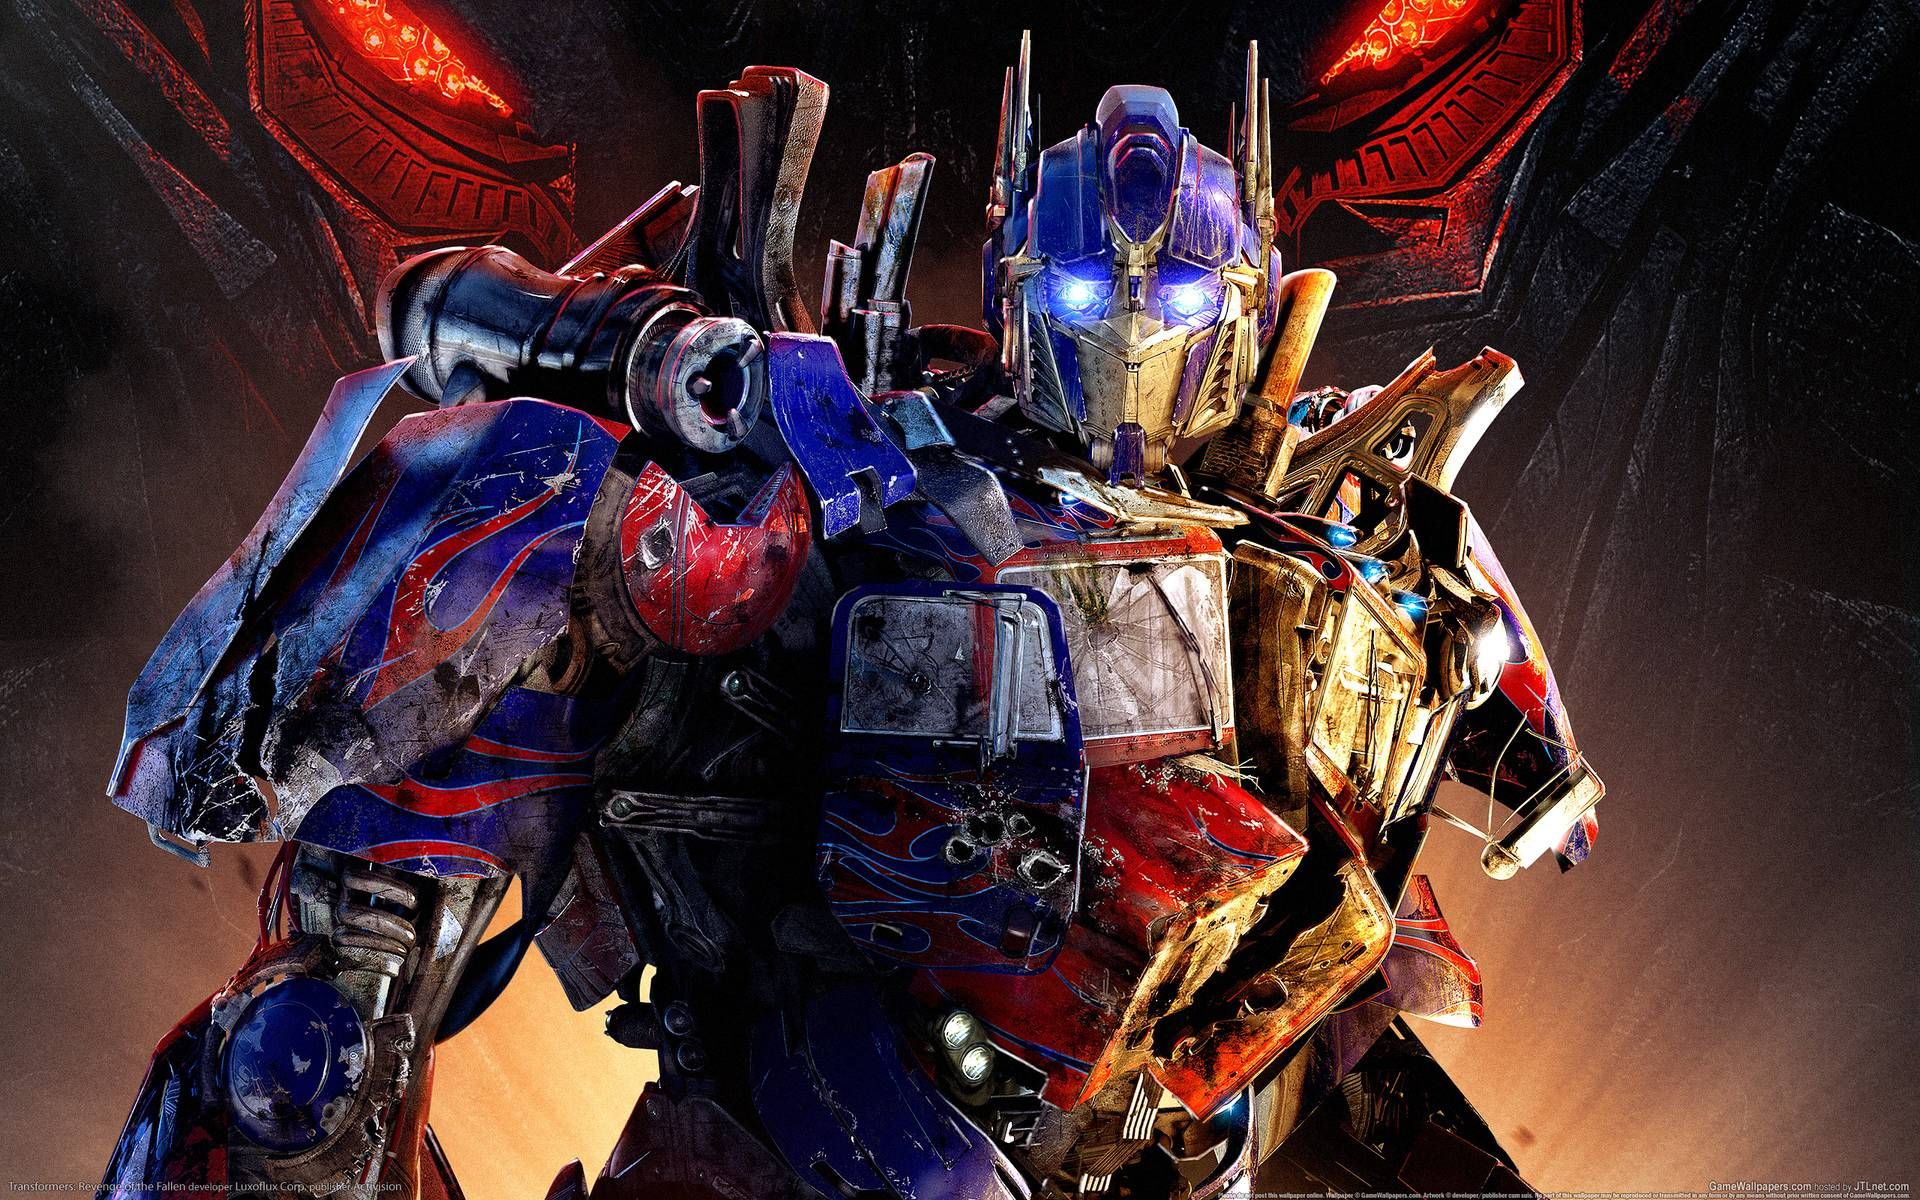 A Quick Glance at the Features of the Optimus Prime Wallpaper